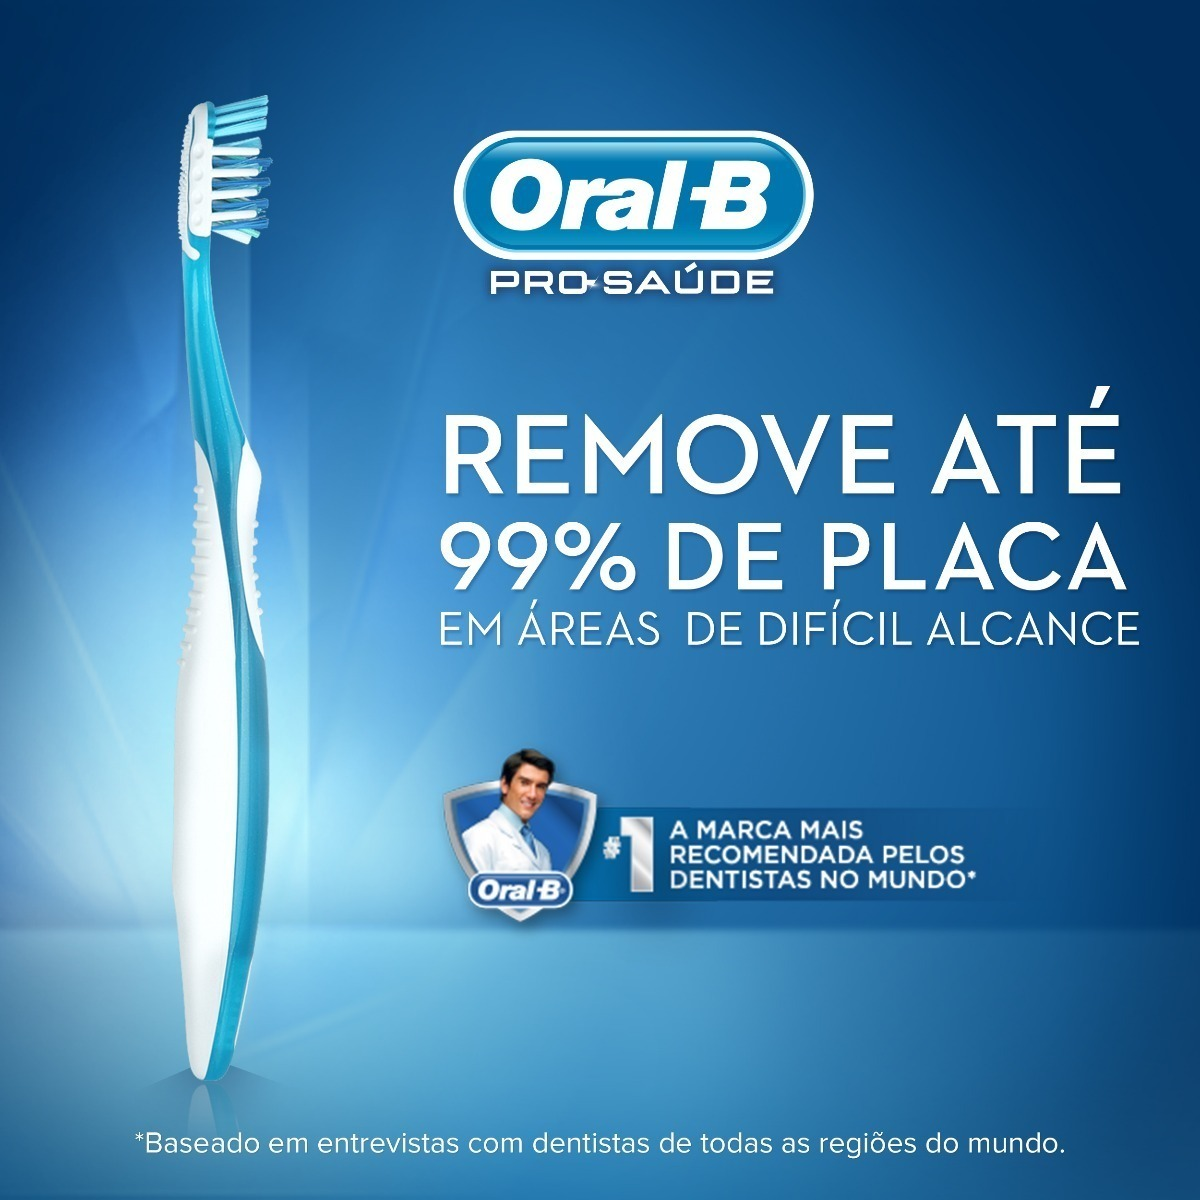 589cd059f 3 Kit Escova Dental Oral B Antibacteriana Macia 40 - R$ 45,99 em ...